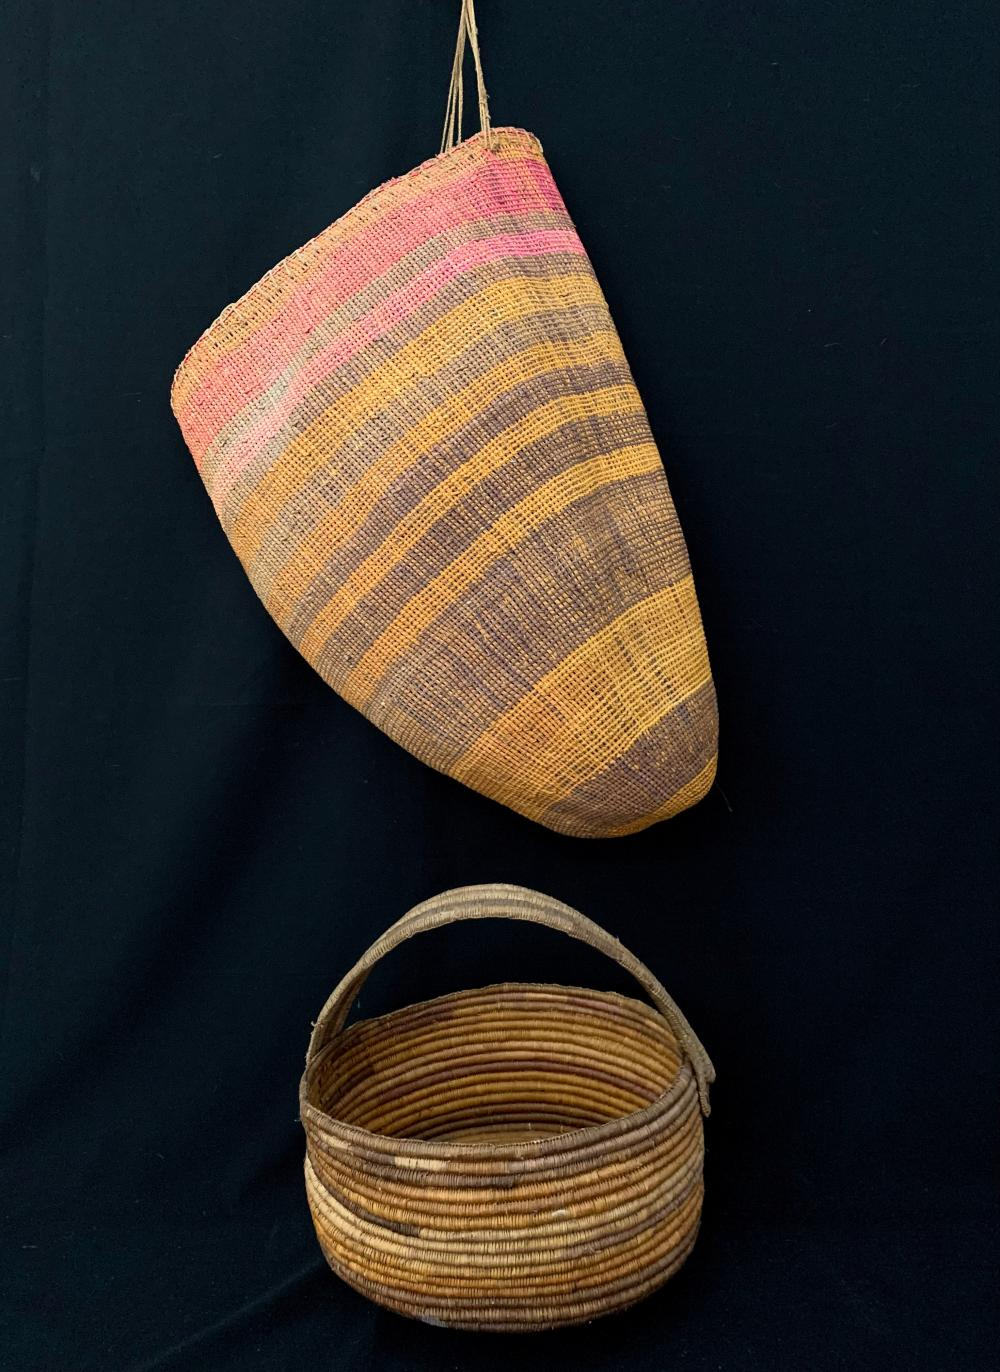 A Large Aboriginal Dilly Bag and a Round Woven Fibre Basket Dyed with Plant Pigment, Northern Territory